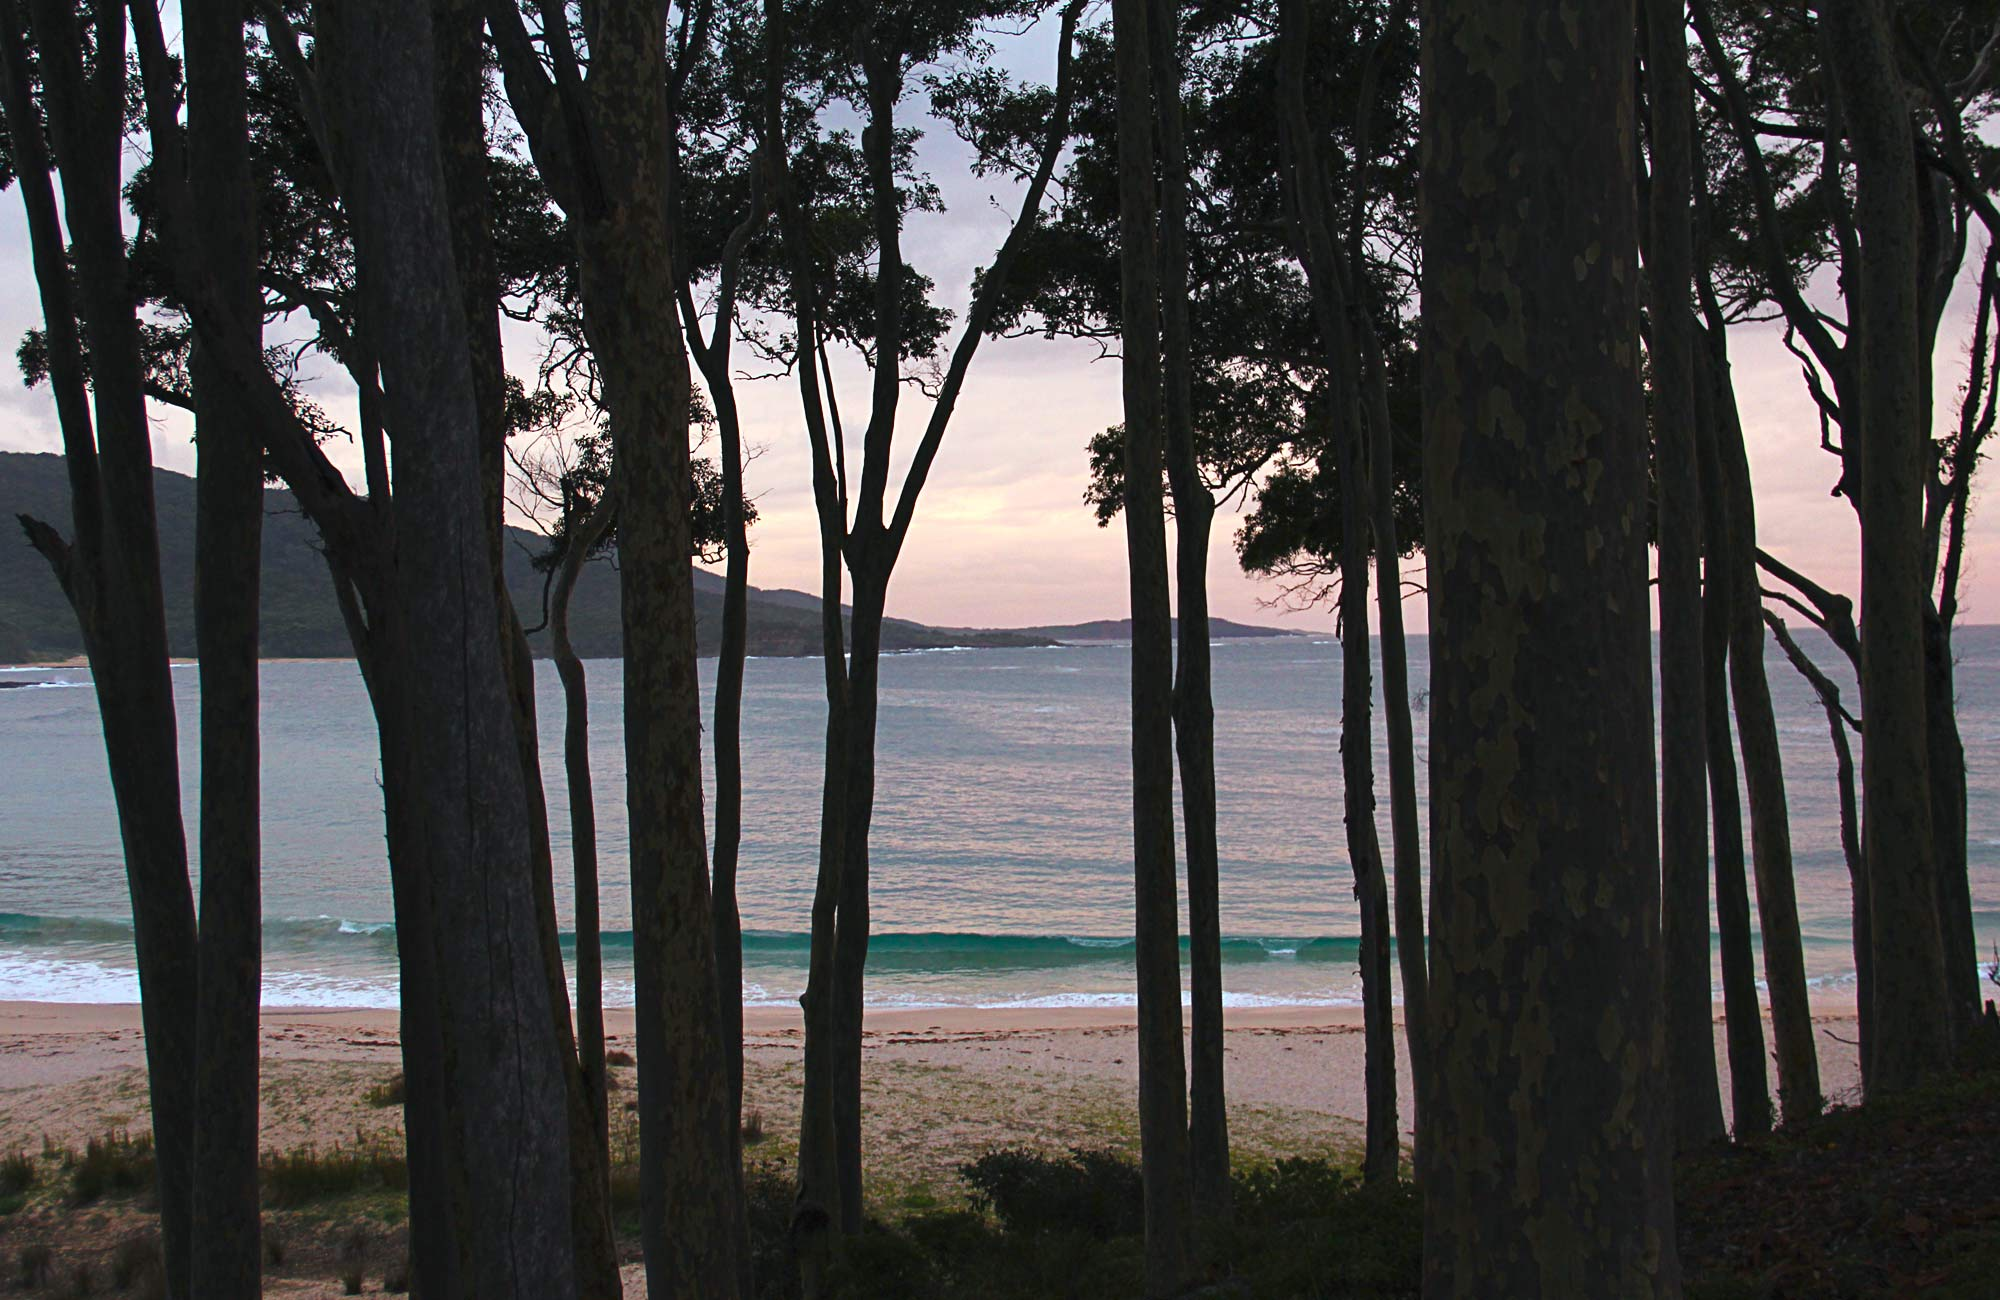 Looking through the trees out to sea on sunset. Photo:John Yurasek